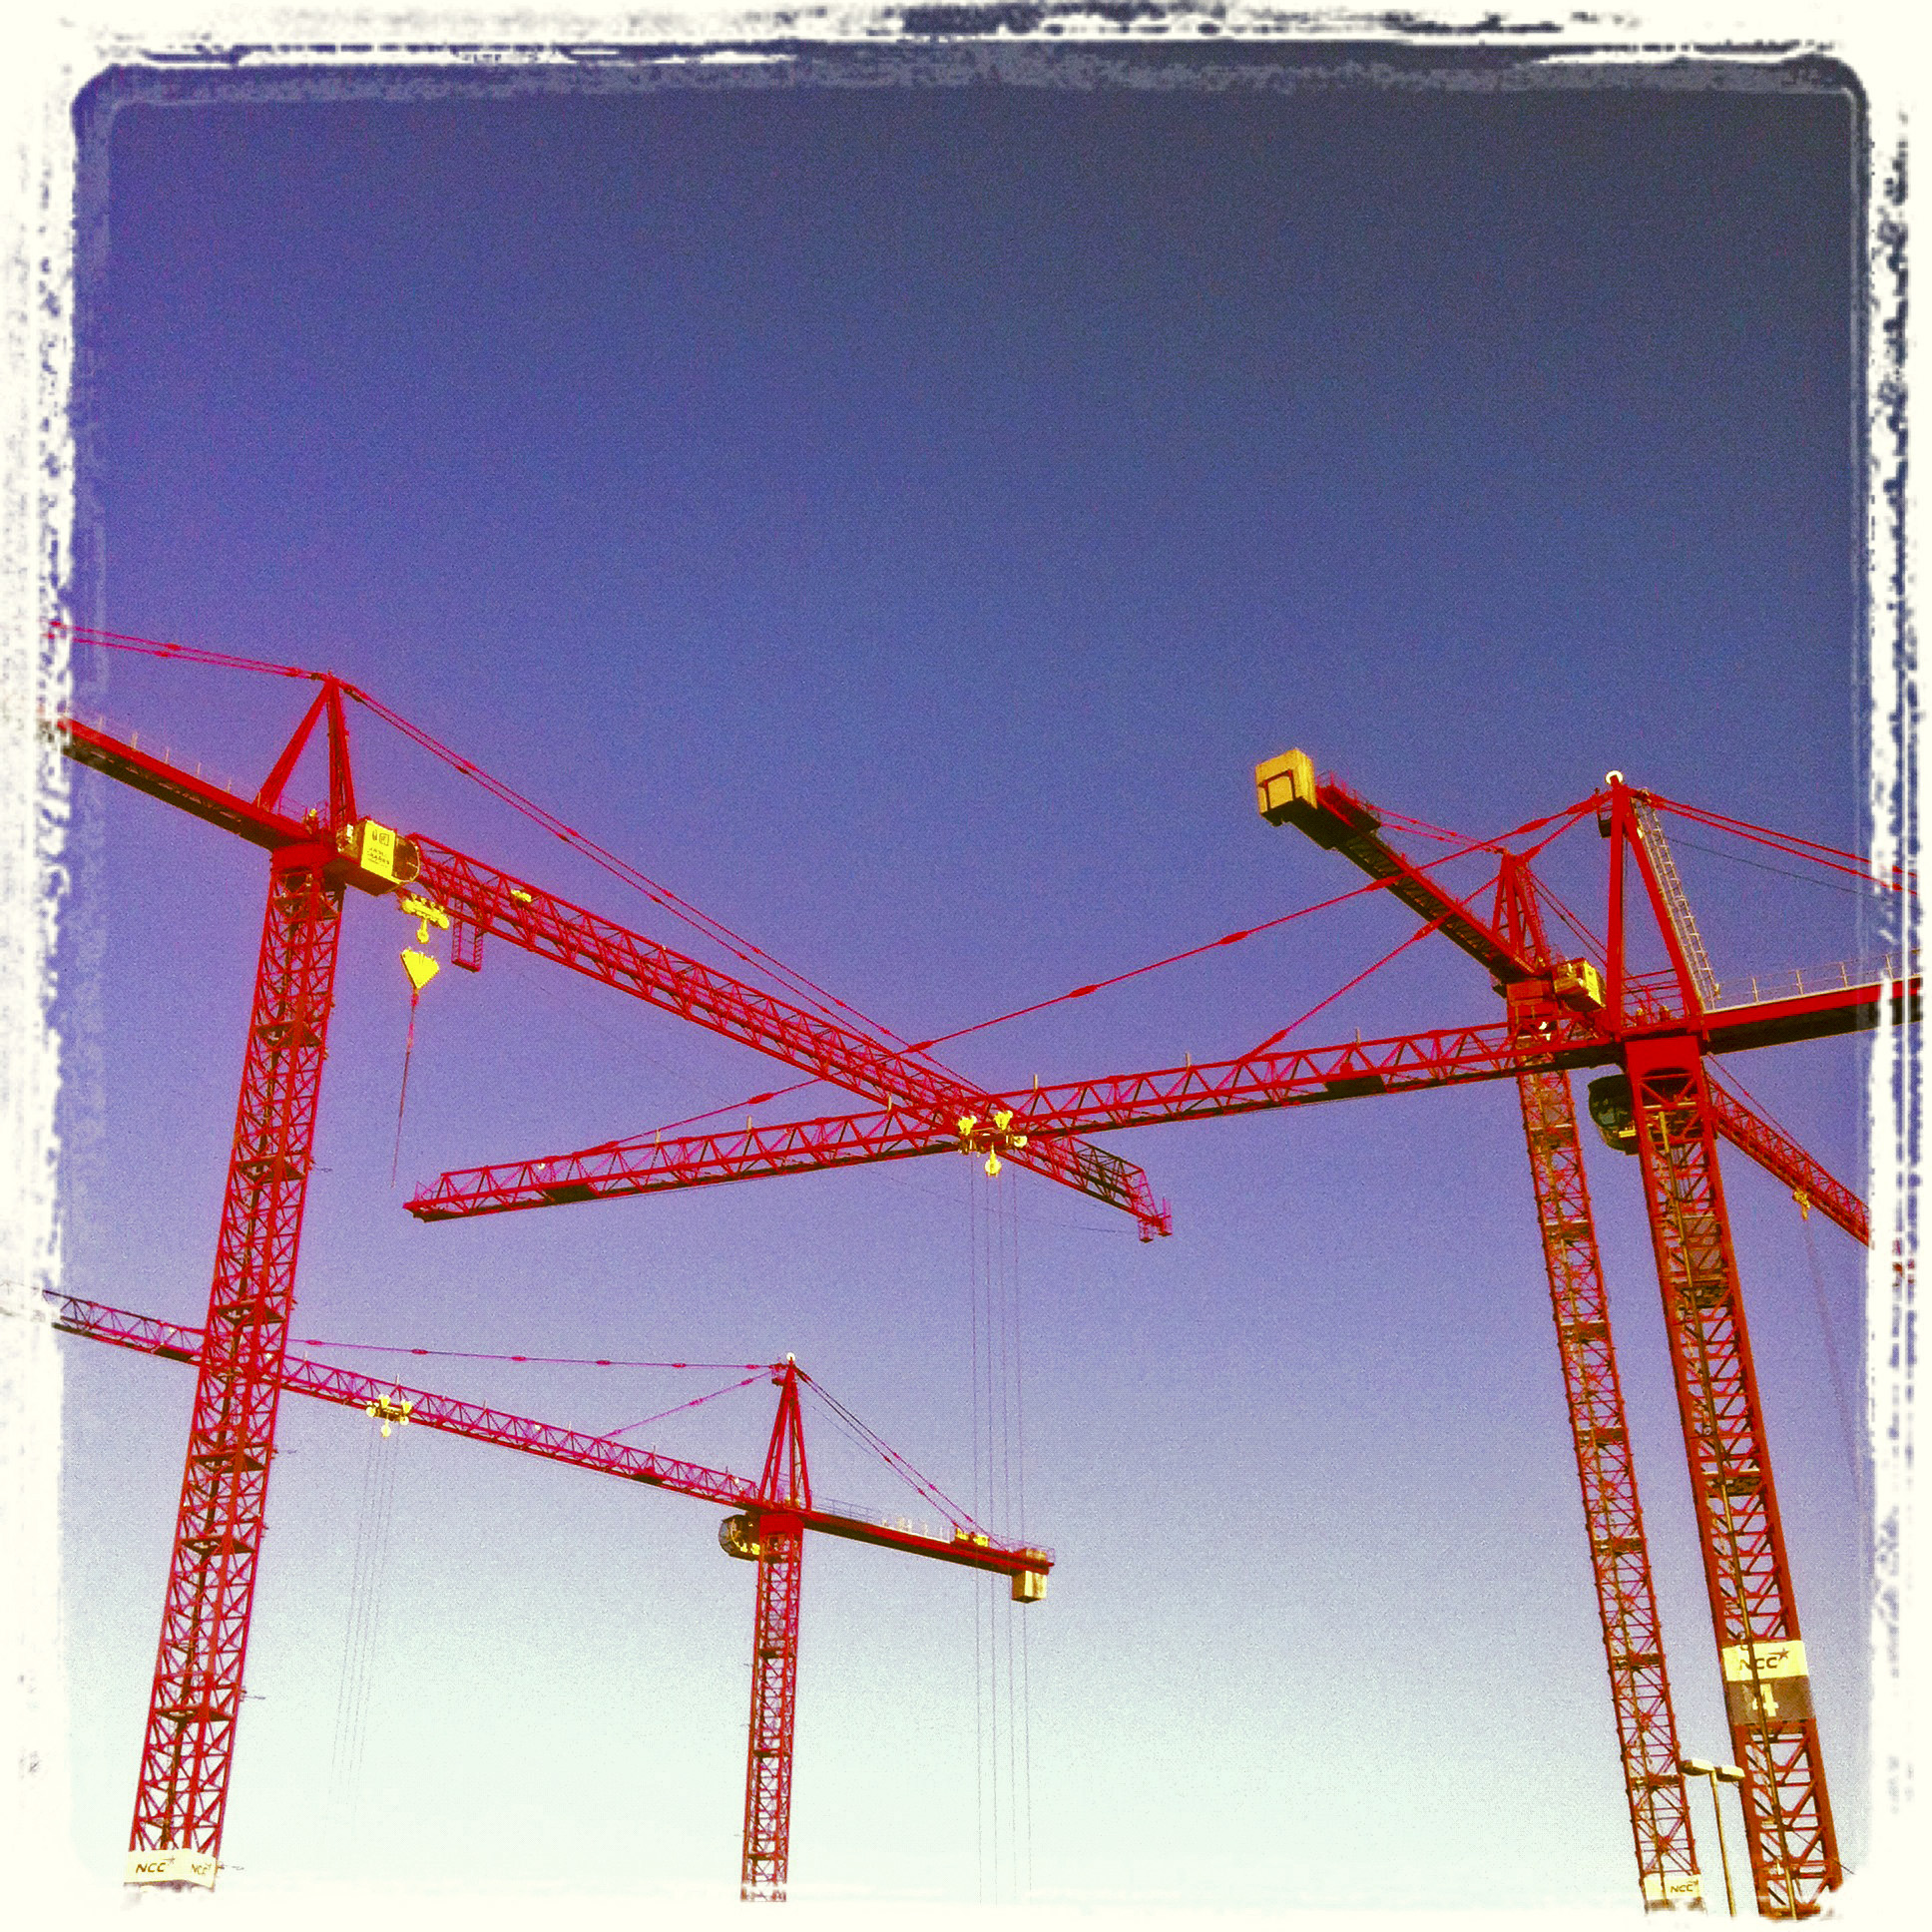 The cranes. 07.12.12 ©lowereast.dk